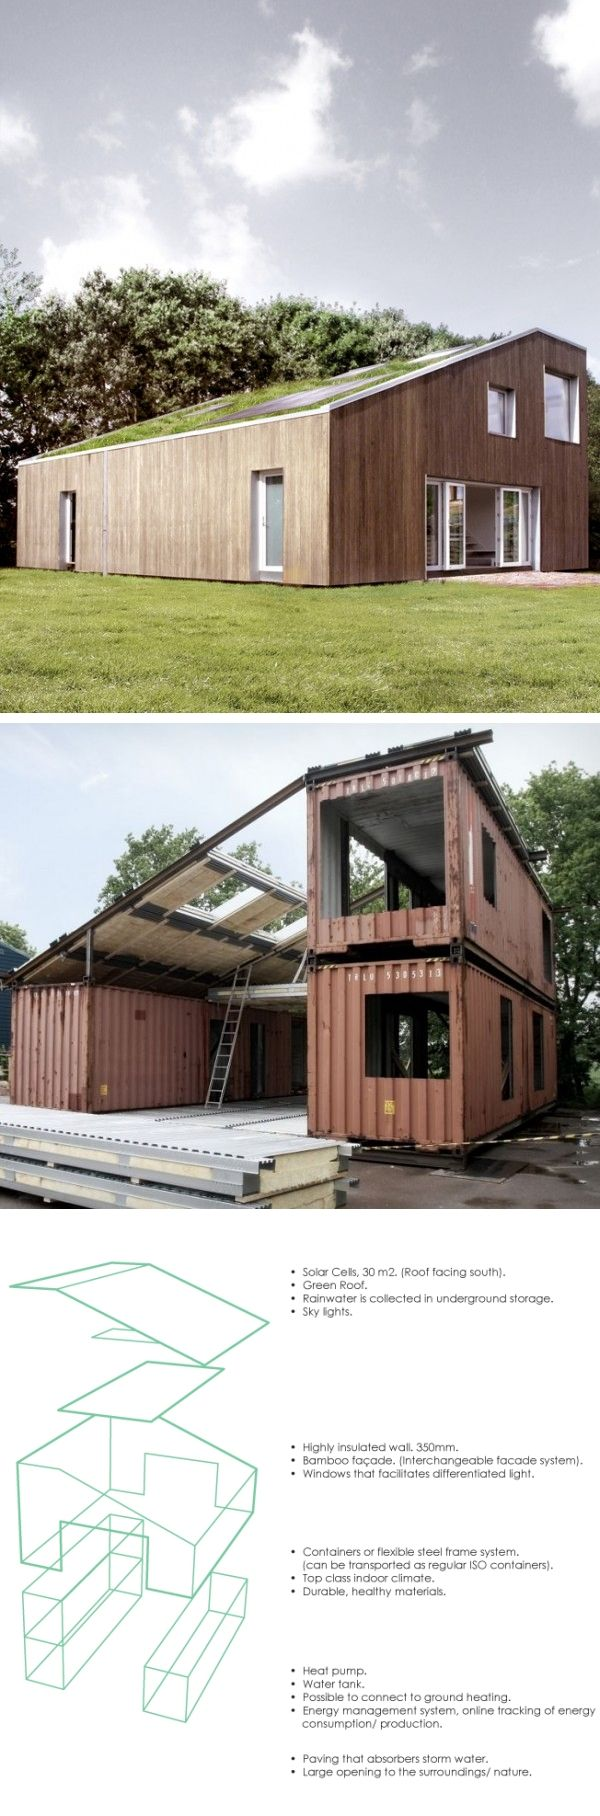 High Quality ... And Undercover Outdoor Areas, Another Shipping Container Home This  Provides Less Natural Light But Would Make A Cheap, Easily Constructed Farm  House.